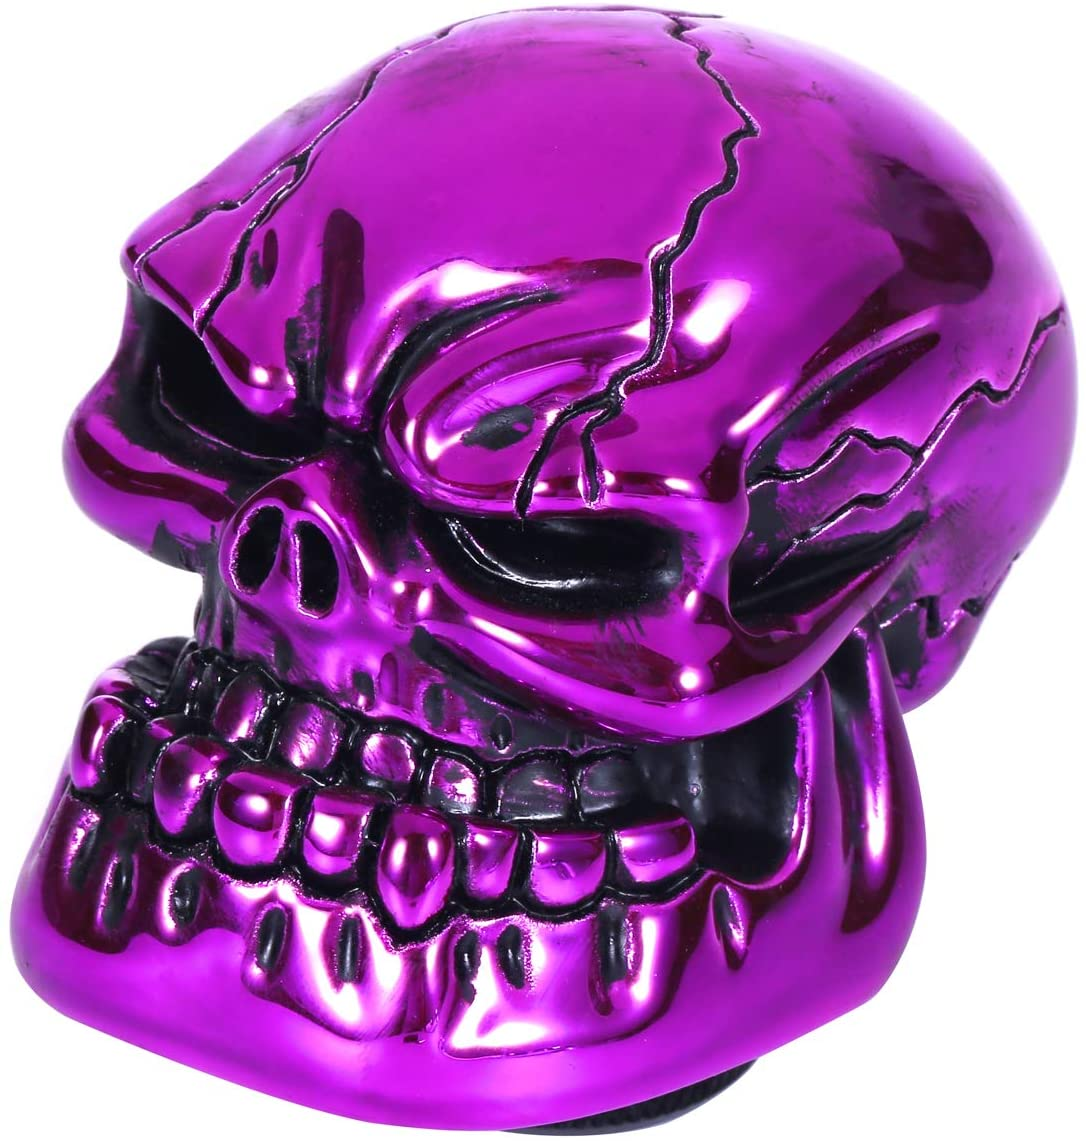 Bashineng Gear Stick Knob Skull Style Shift Head Replacement Shifter Fit Most Manual Automatic Cars (Purple)